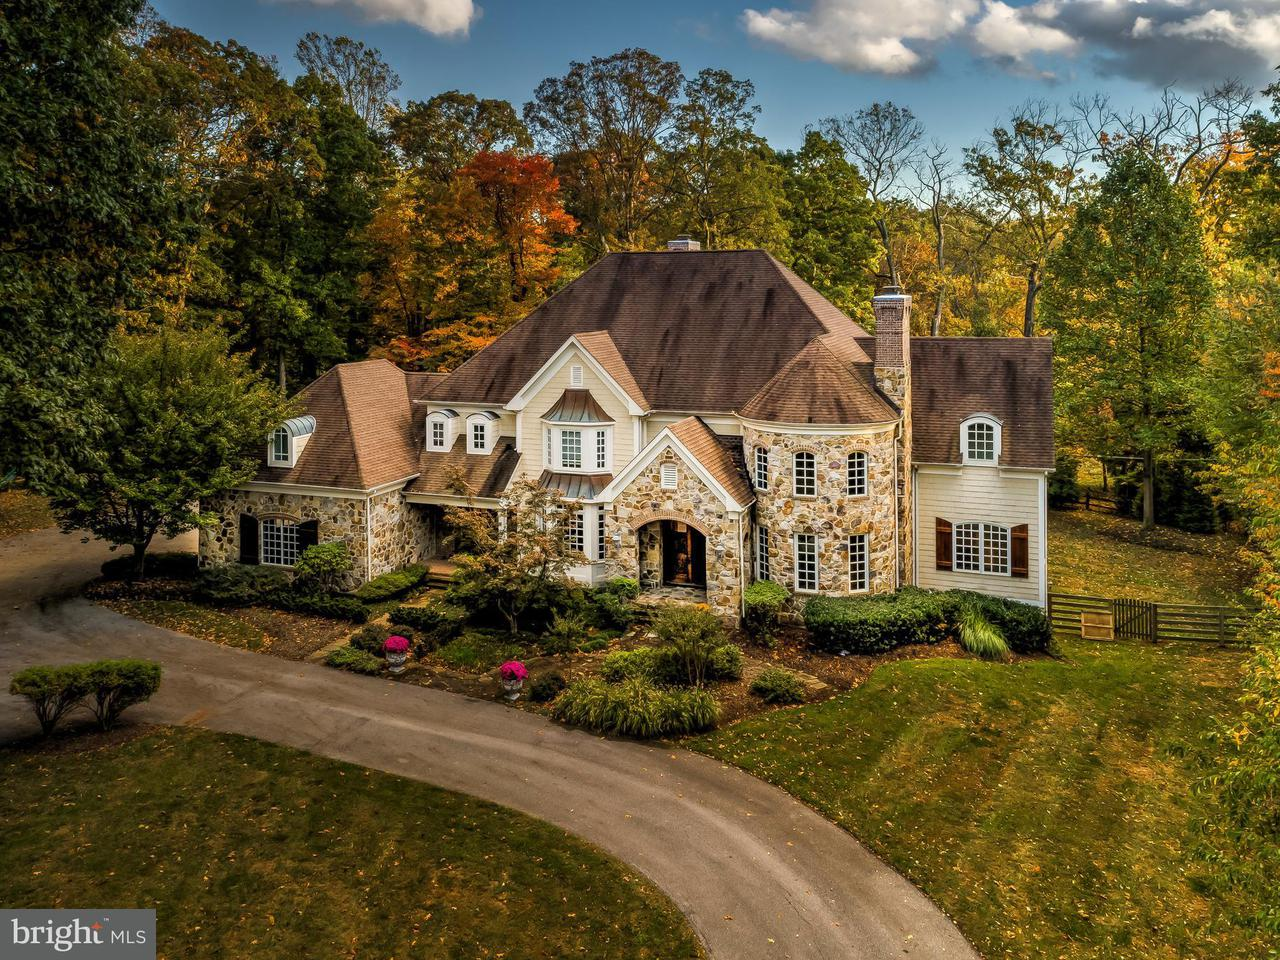 Single Family Home for Sale at 11 SPRING FOREST Court 11 SPRING FOREST Court Owings Mills, Maryland 21117 United States